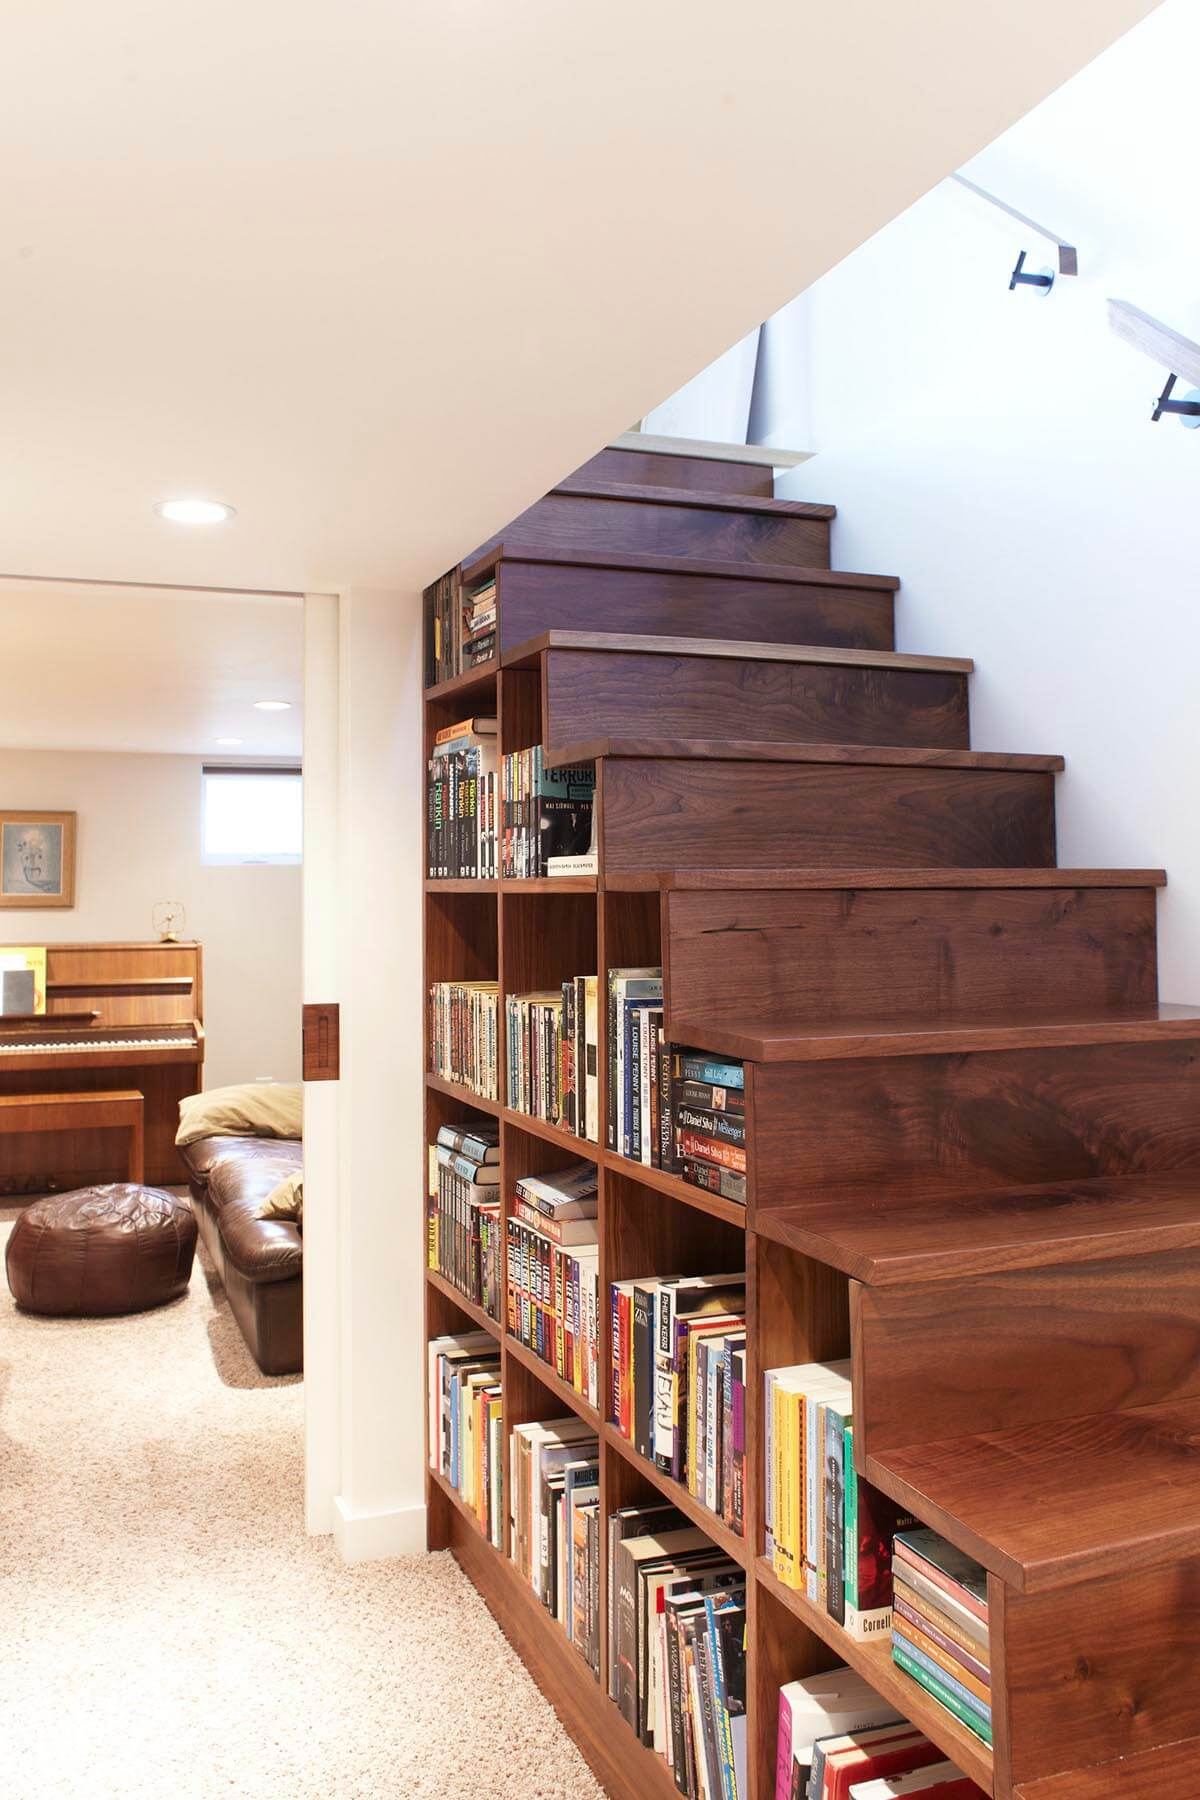 Custom Built-in Bookshelves Maximize Under-stair Space